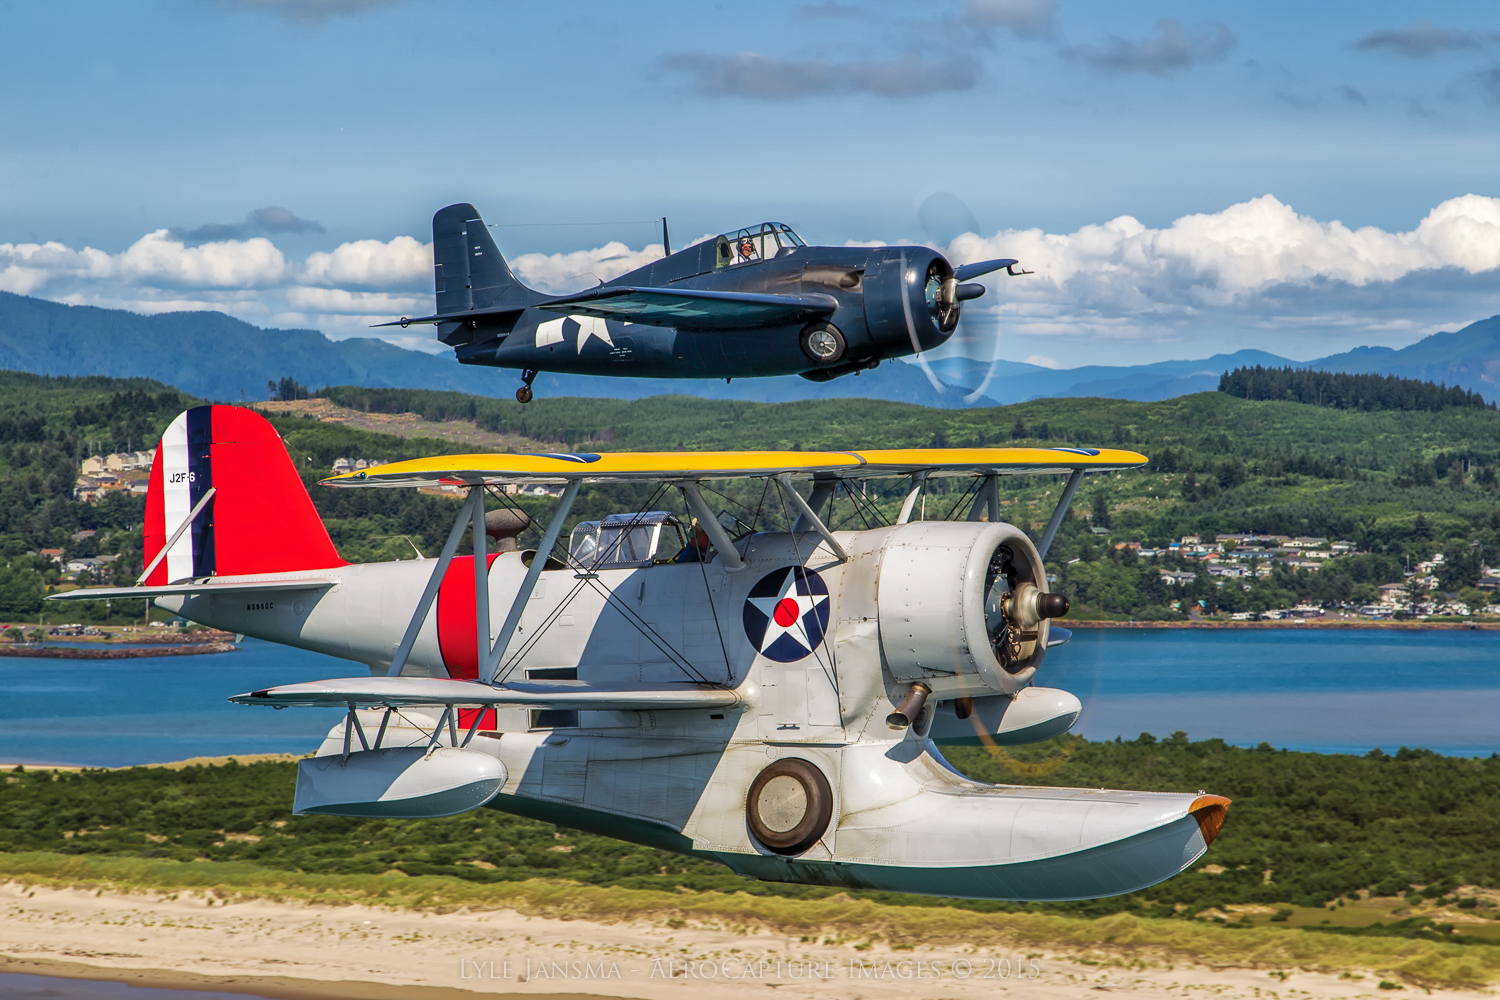 The Erickson Aircraft Collection's Grumman Duck and FM-2 Wildcat captured over the dramatic landscape of Oregon's coastal region. (photo by Lyle Jansma -AeroCapture Images™ |  Jansma Design LLC)